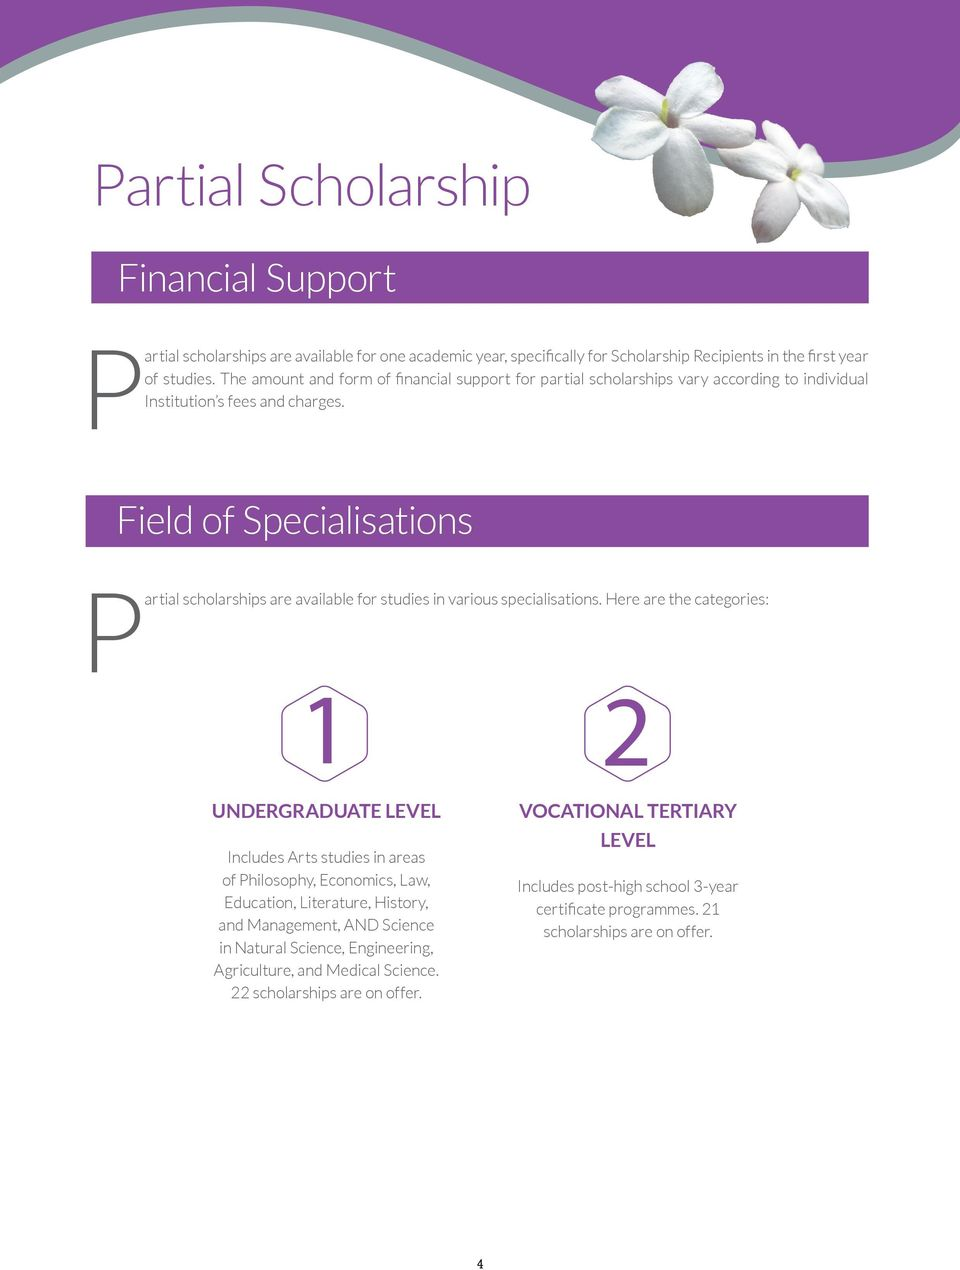 Field of Specialisations Partial scholarships are available for studies in various specialisations.